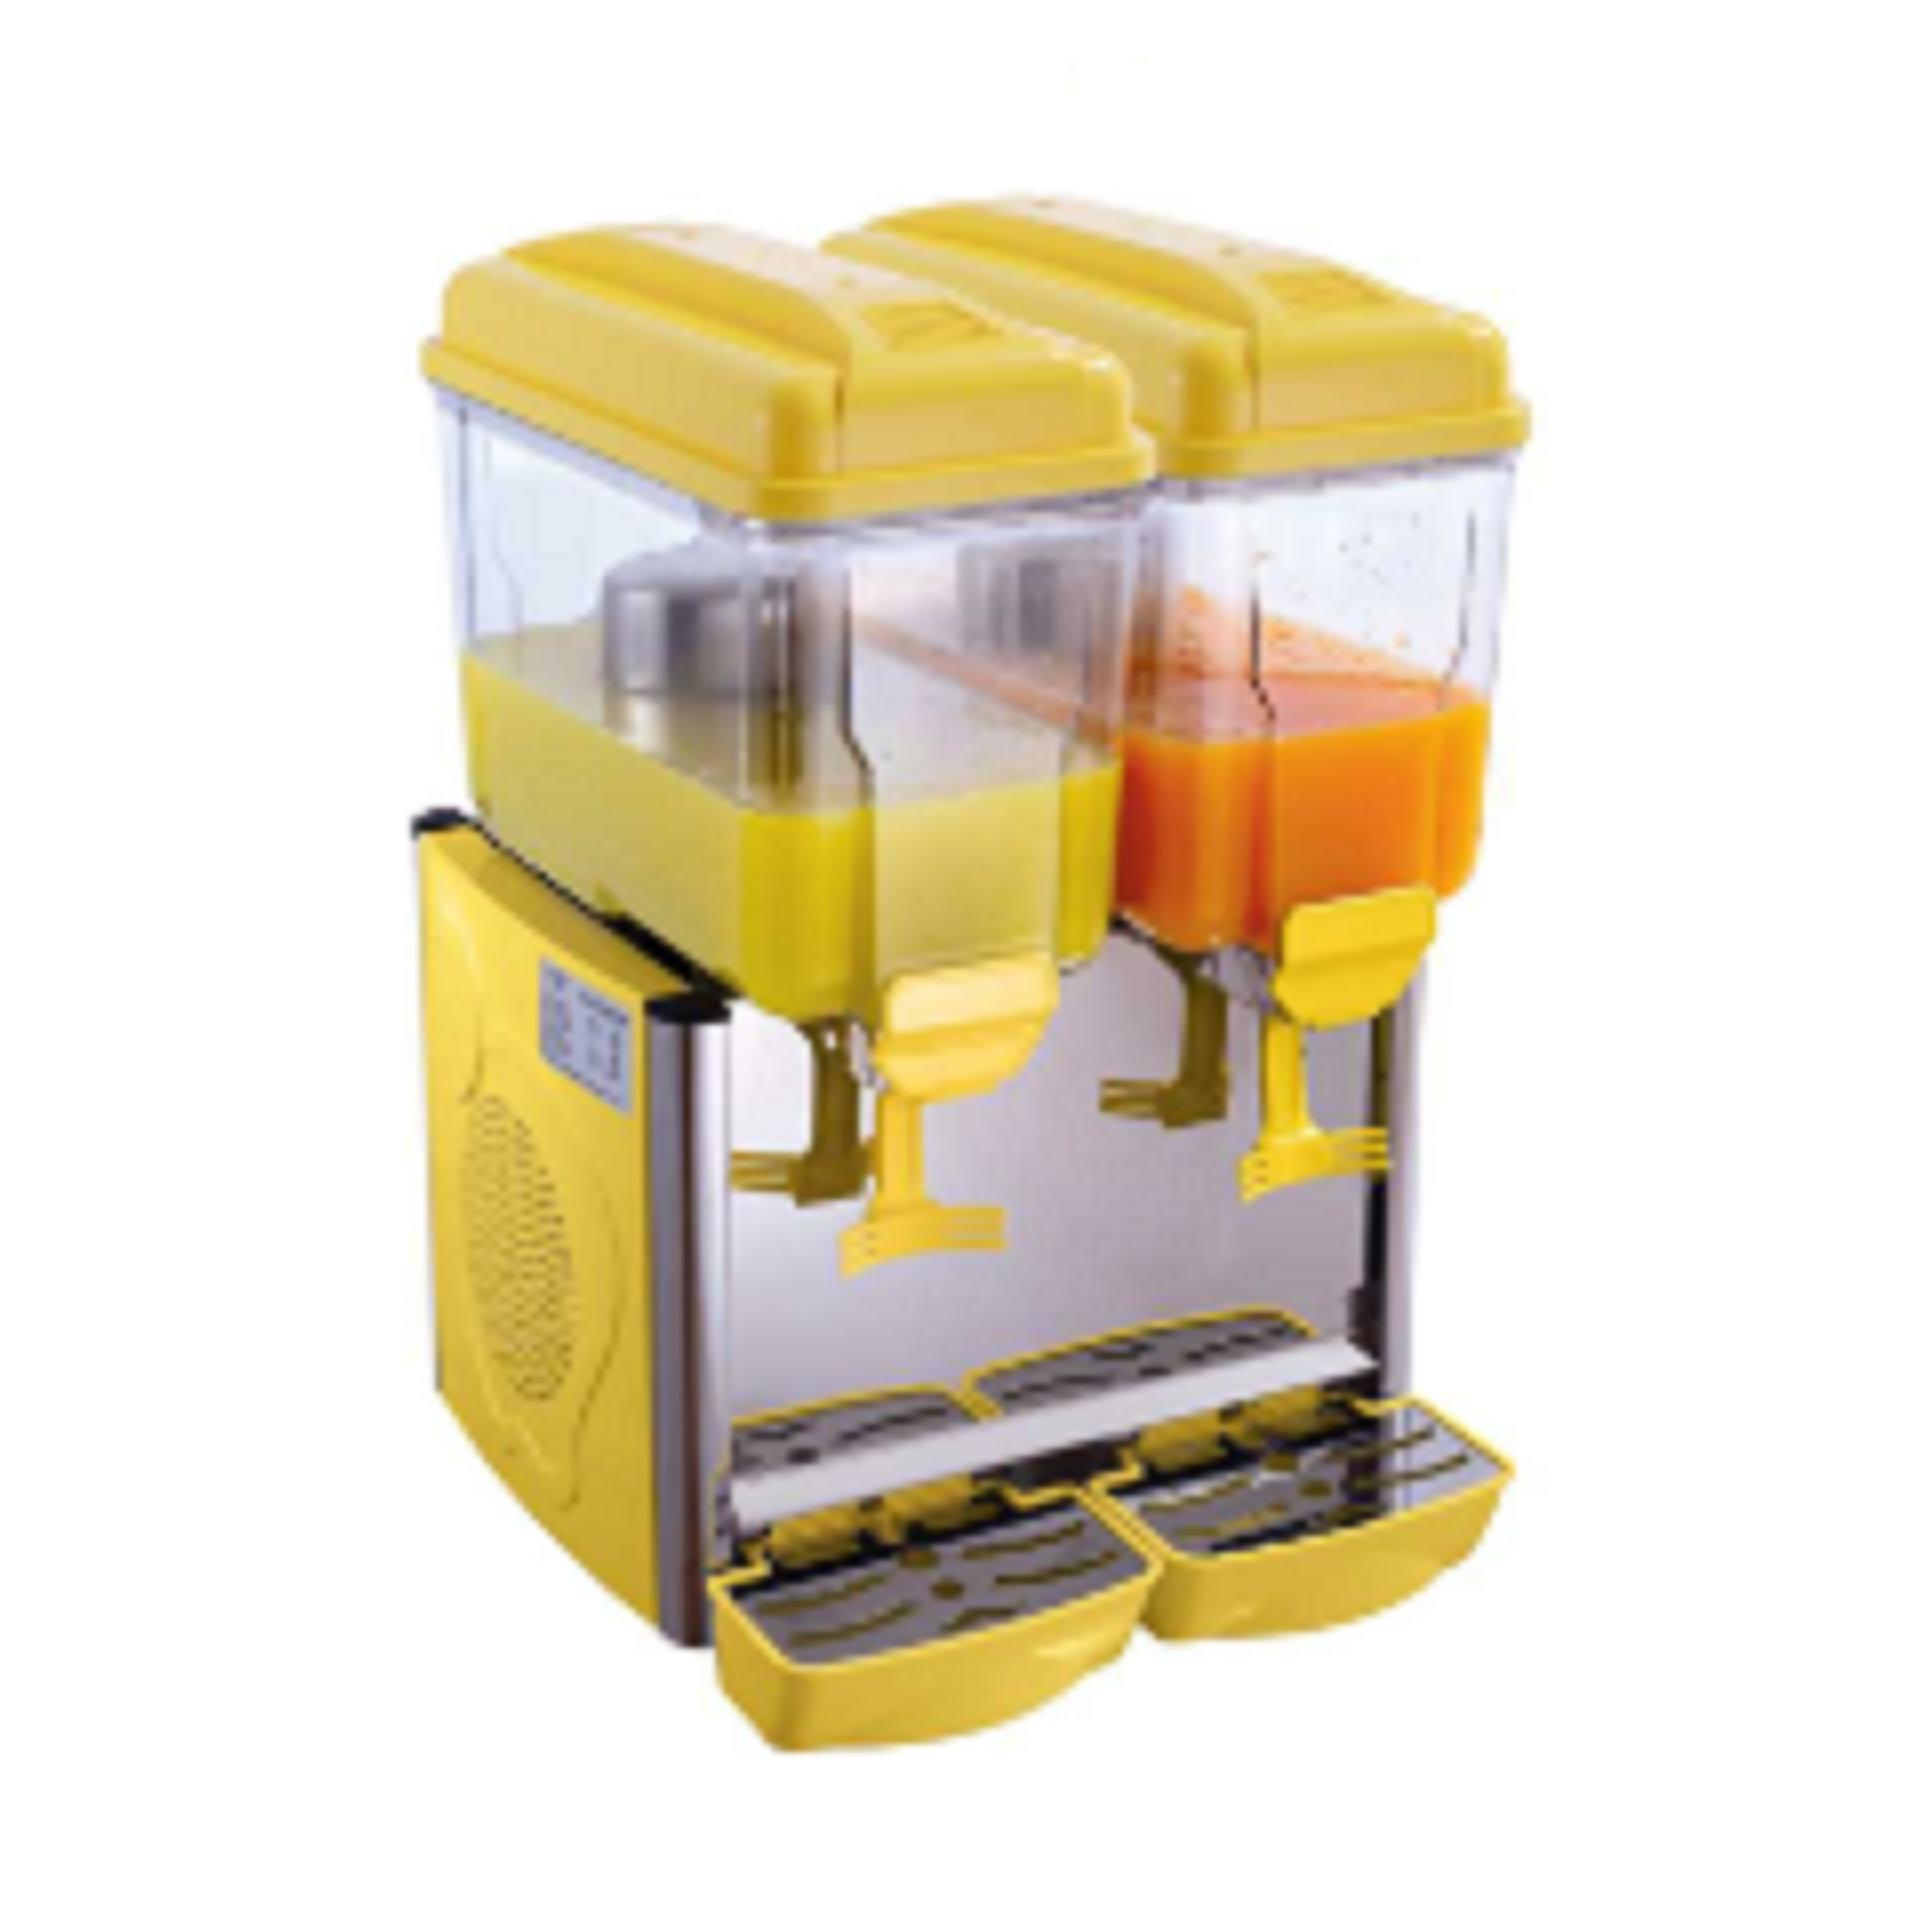 Cheap online Gea - Mesin Pendingin Minuman (Juice Dispenser LP-12x2) - Kuning